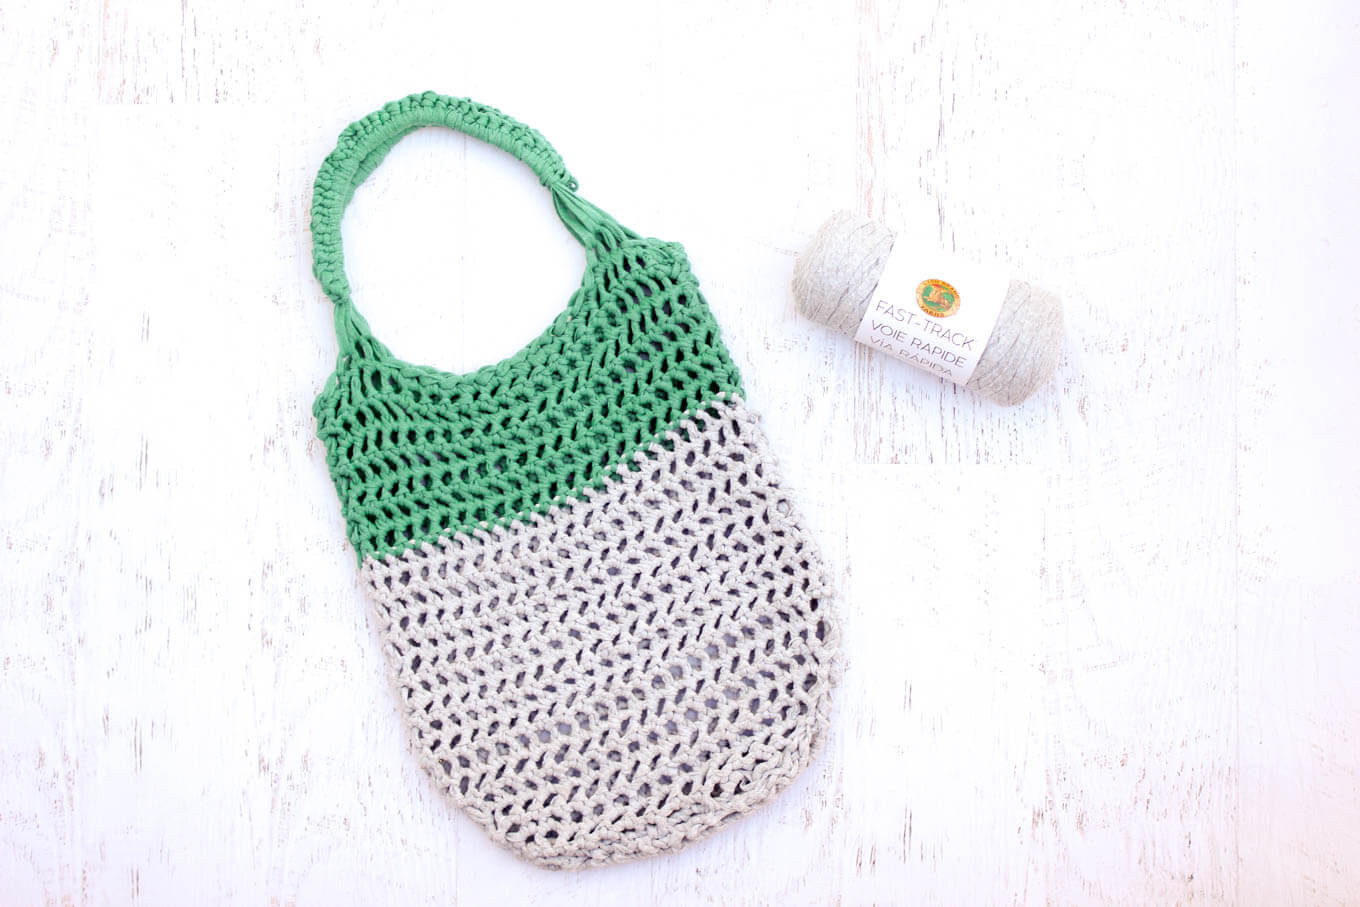 Crochet Bag Pattern for Beginners New Beginner Finger Crochet Market tote Bag Free Pattern 14 Of Awesome 45 Photos Crochet Bag Pattern for Beginners